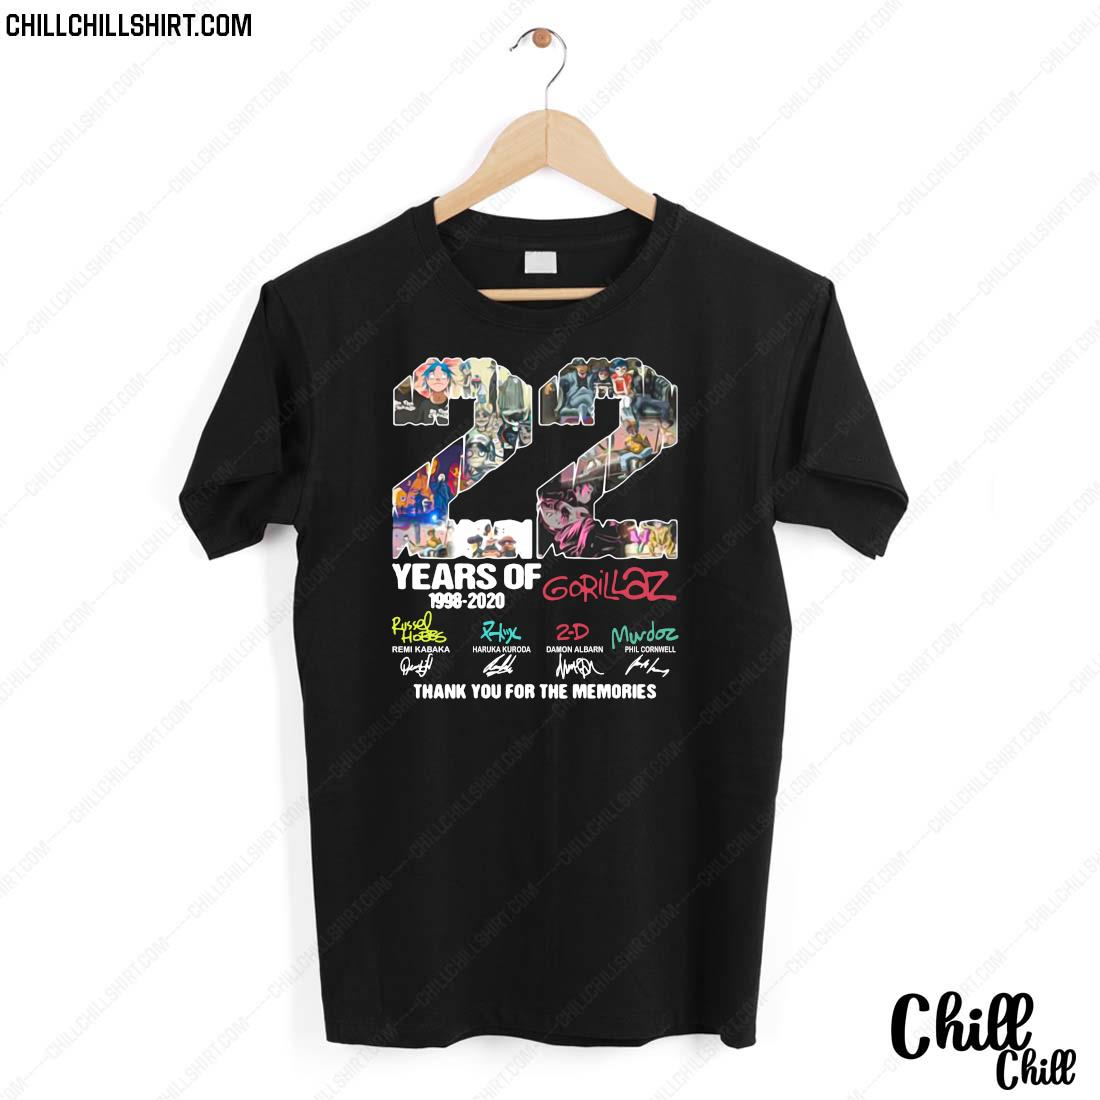 22 Years Of 1998 2020 Gorillaz Thank You For The Memories Signatures Shirt